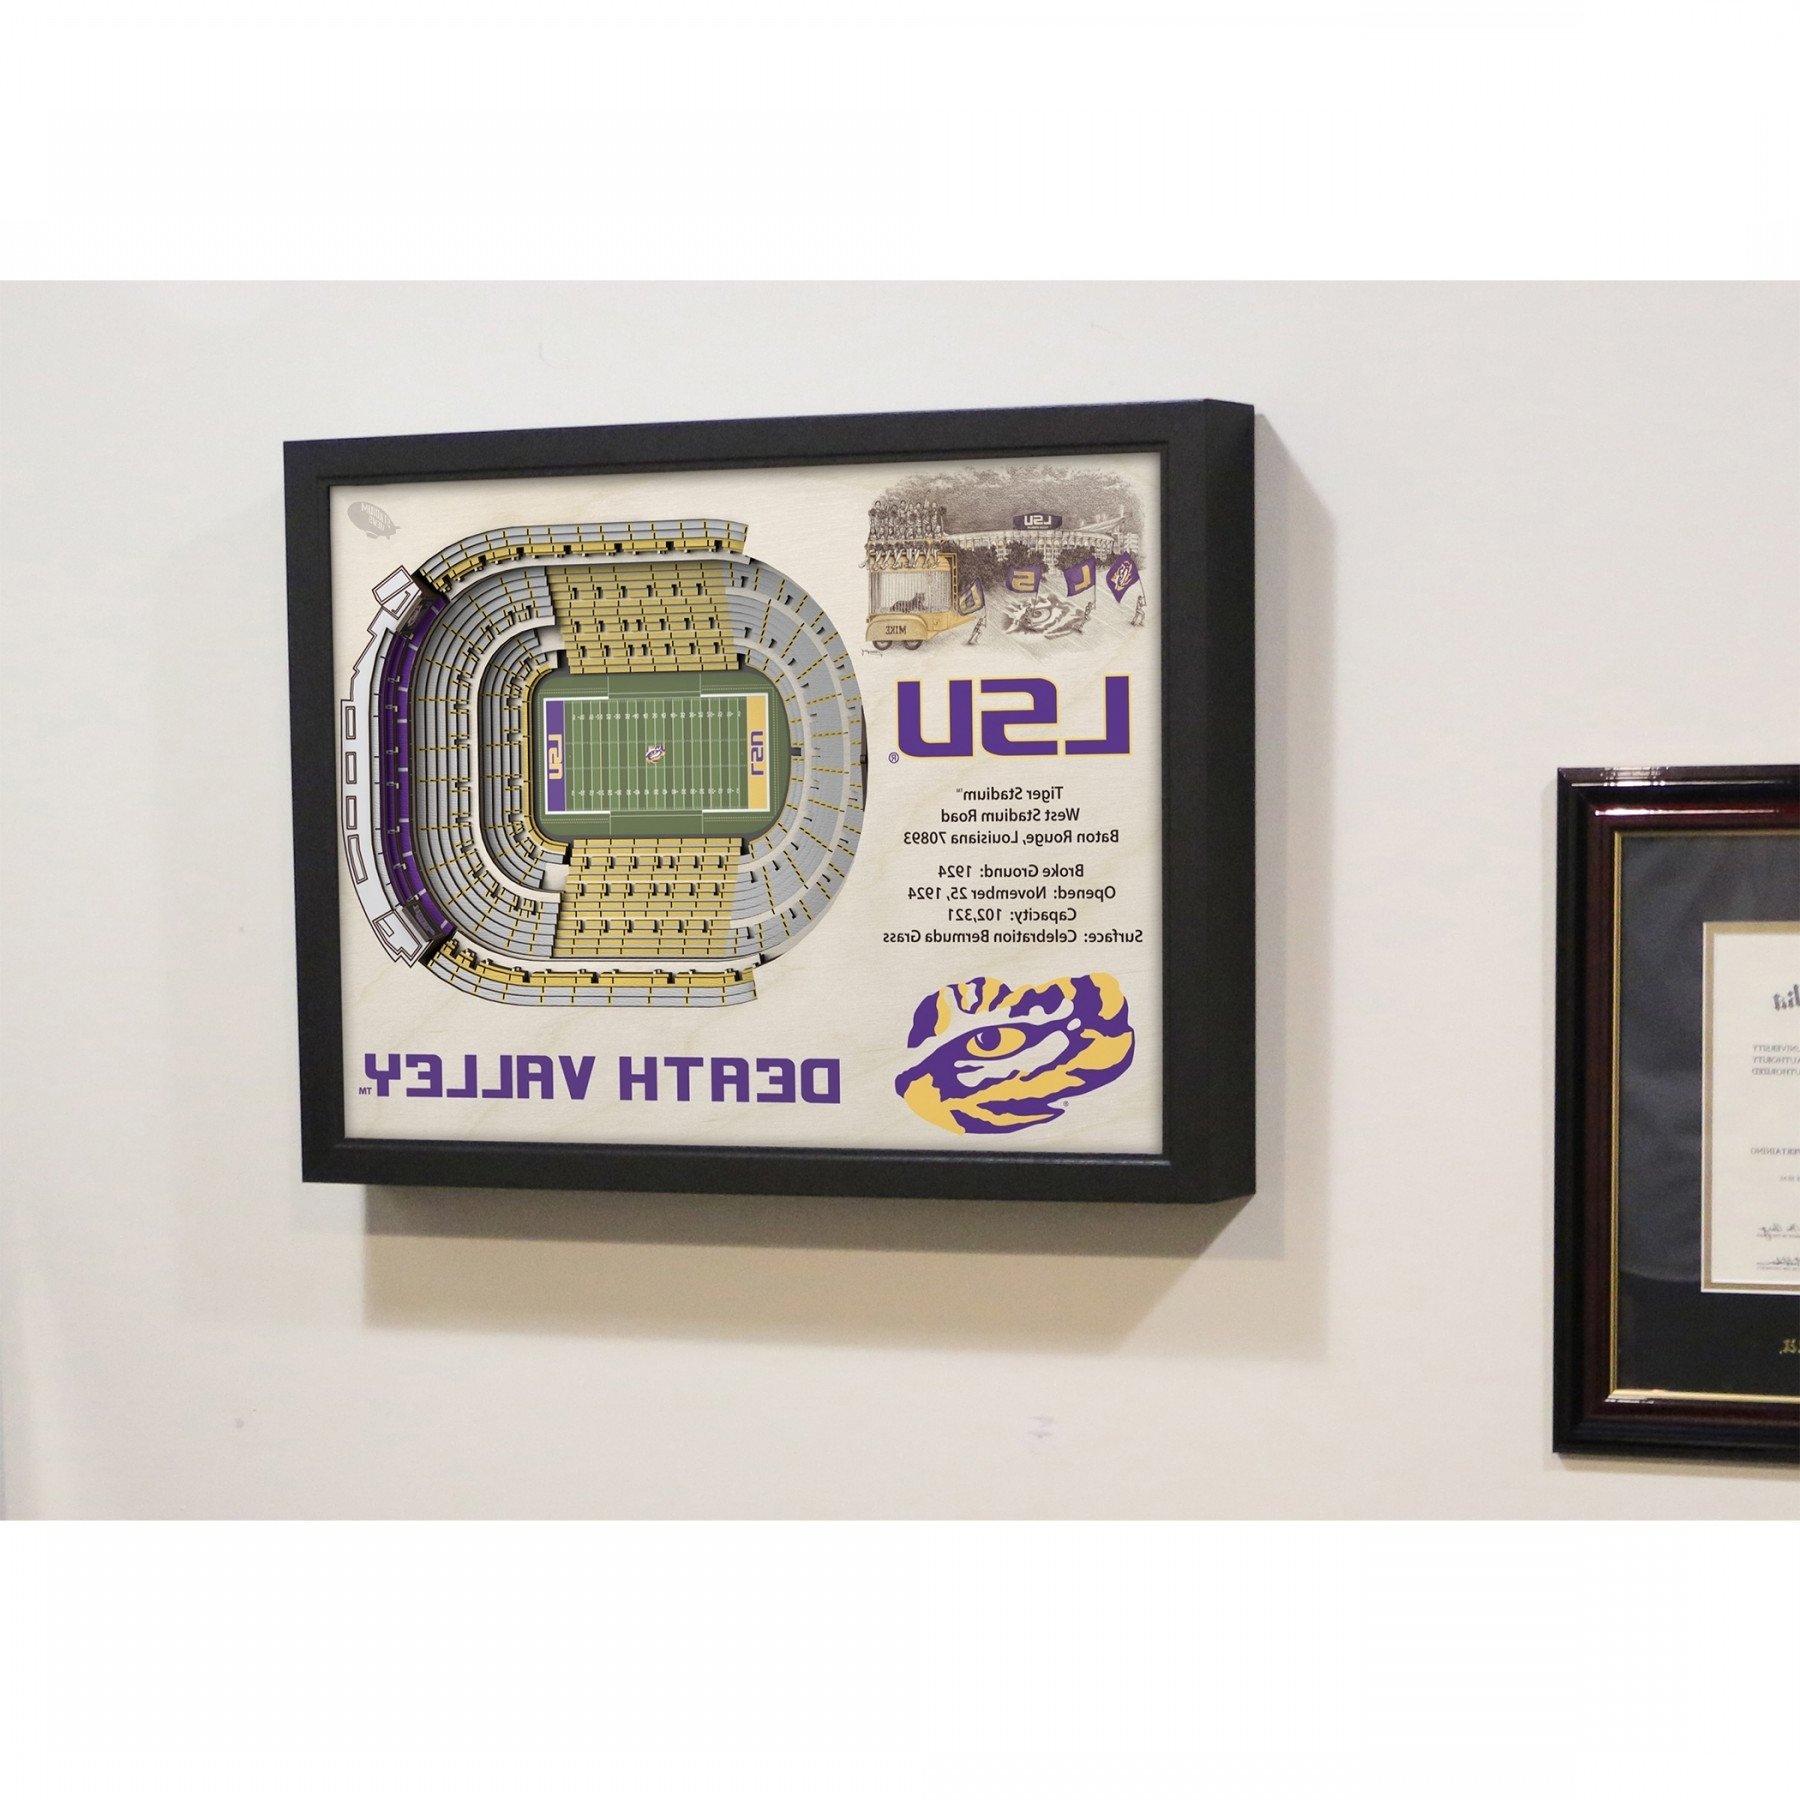 Current Lsu Tigers Stadiumview Wall Art – Tiger Stadium 3 D Reproduction For Lsu Wall Art (View 2 of 15)